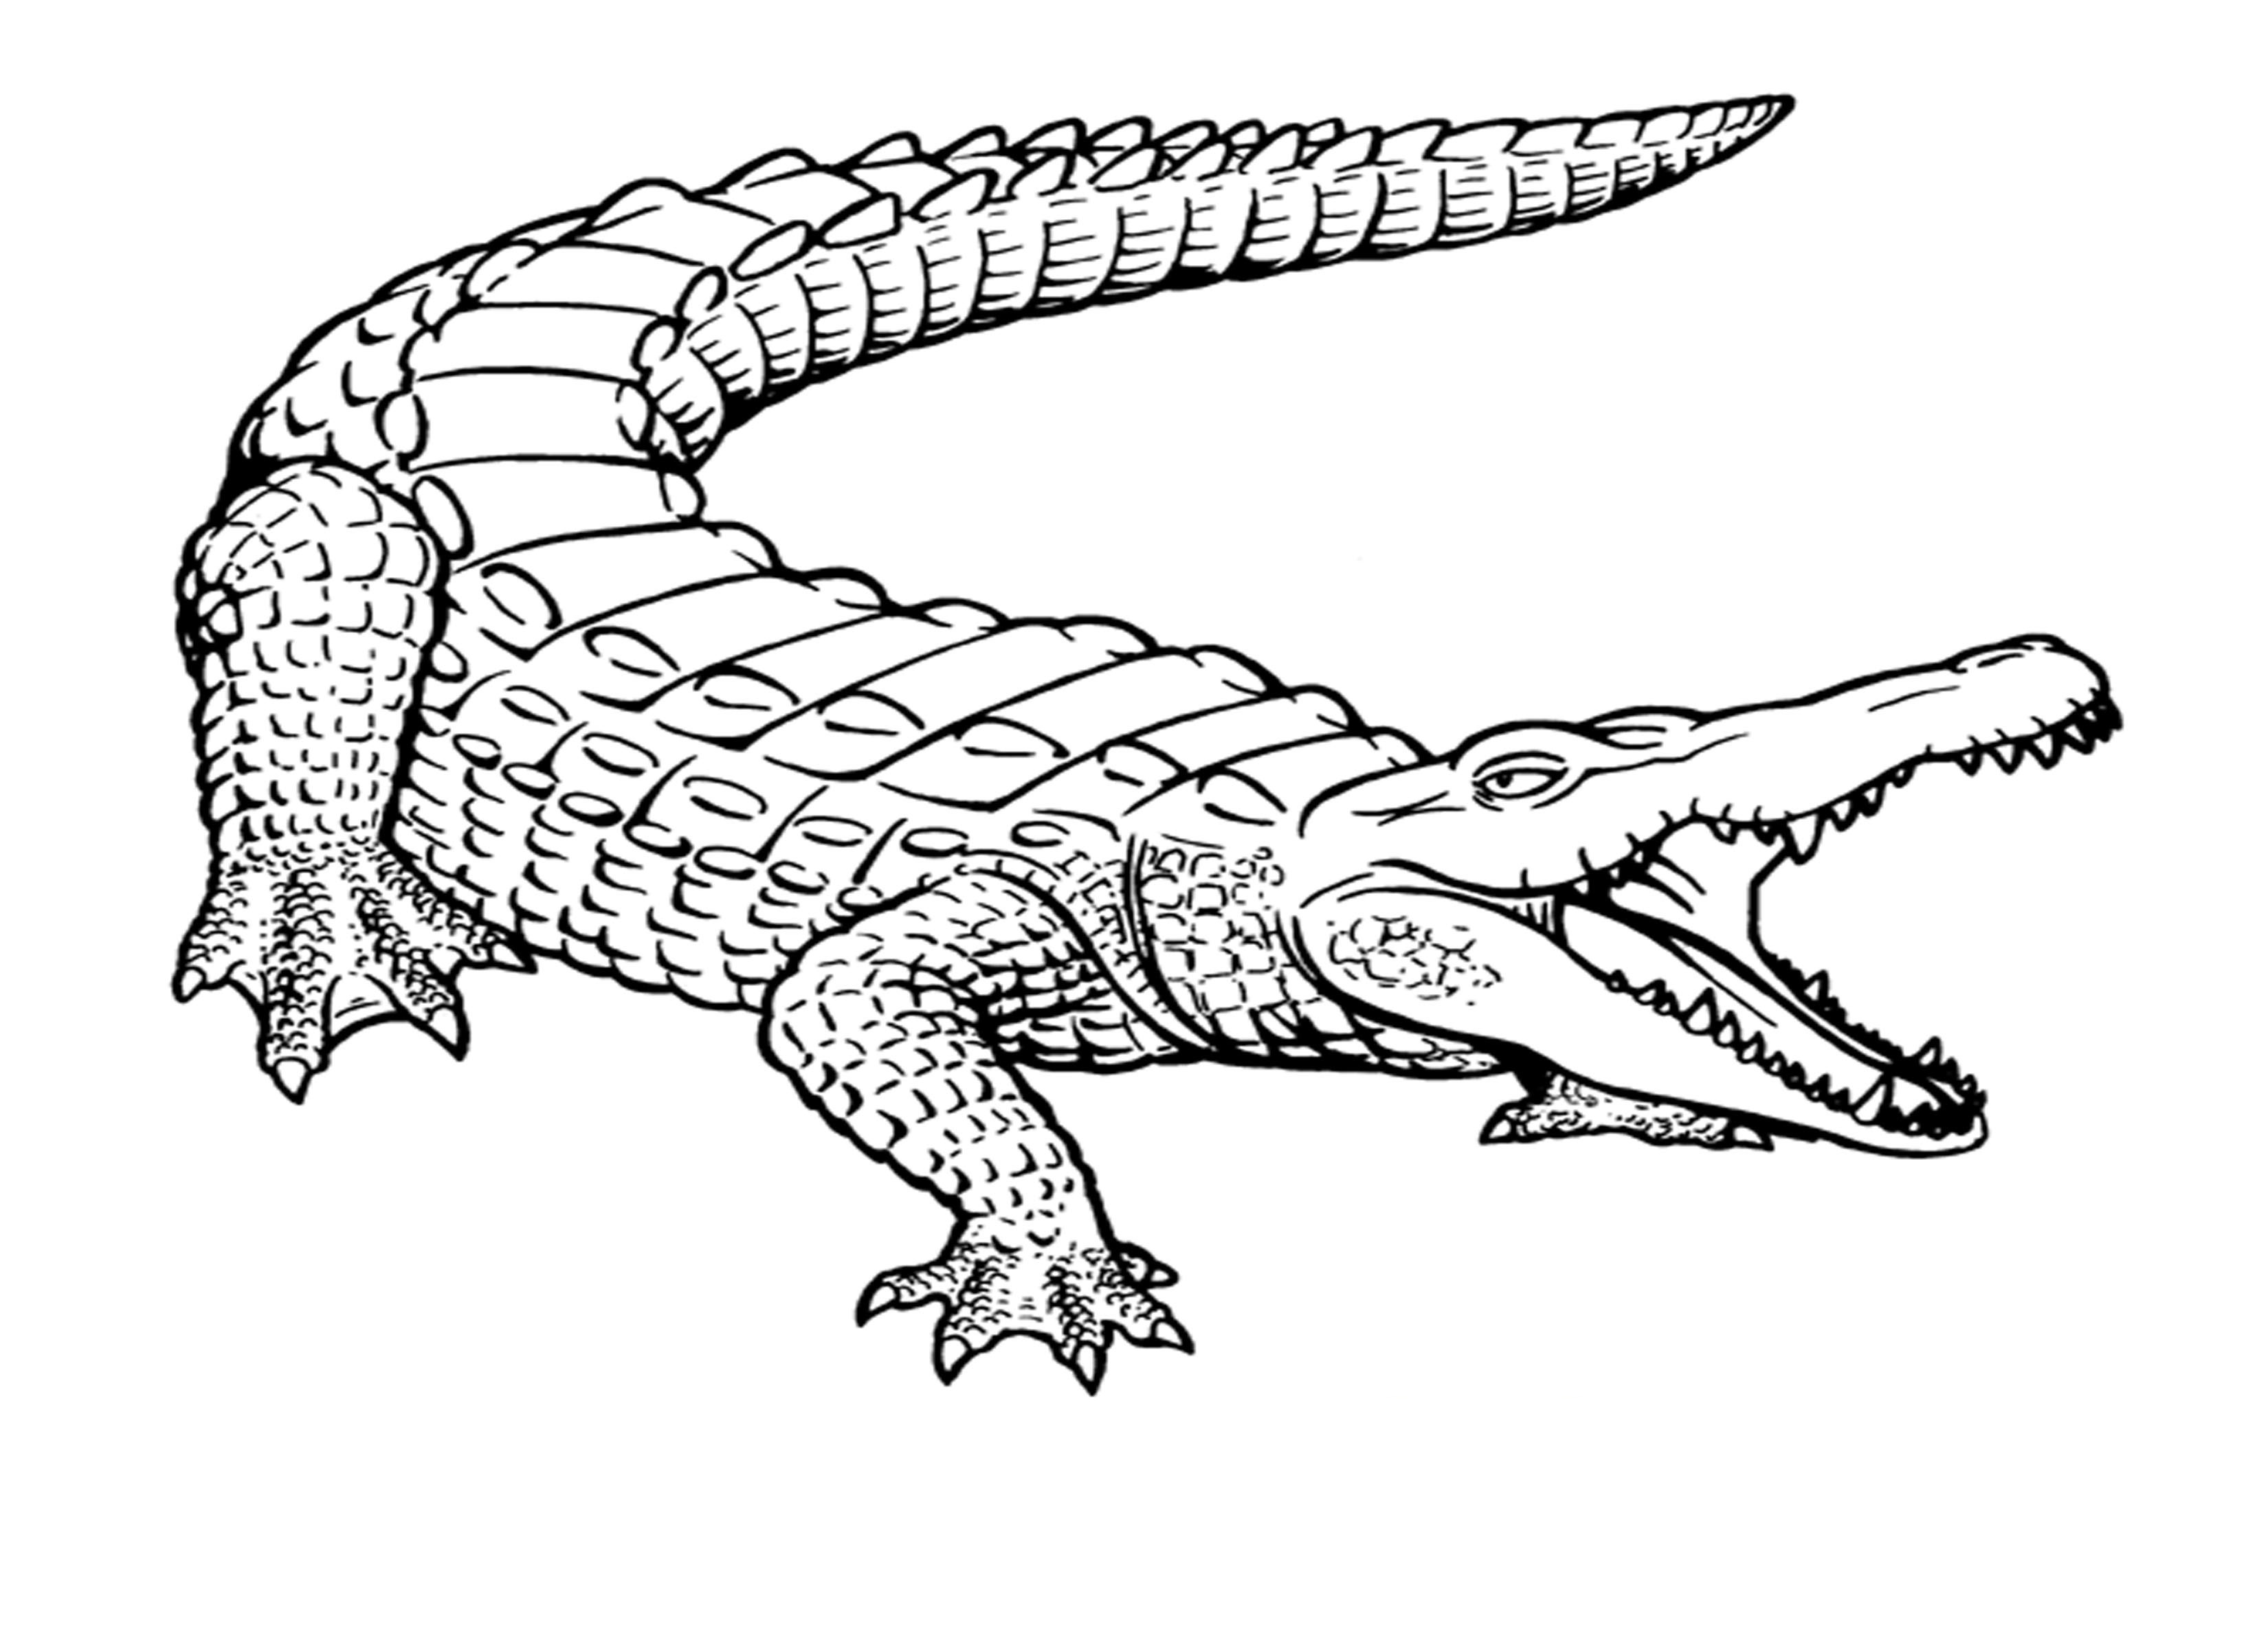 crocodile pictures to print baby crocodiles coloring pages free printable coloring pages to pictures print crocodile